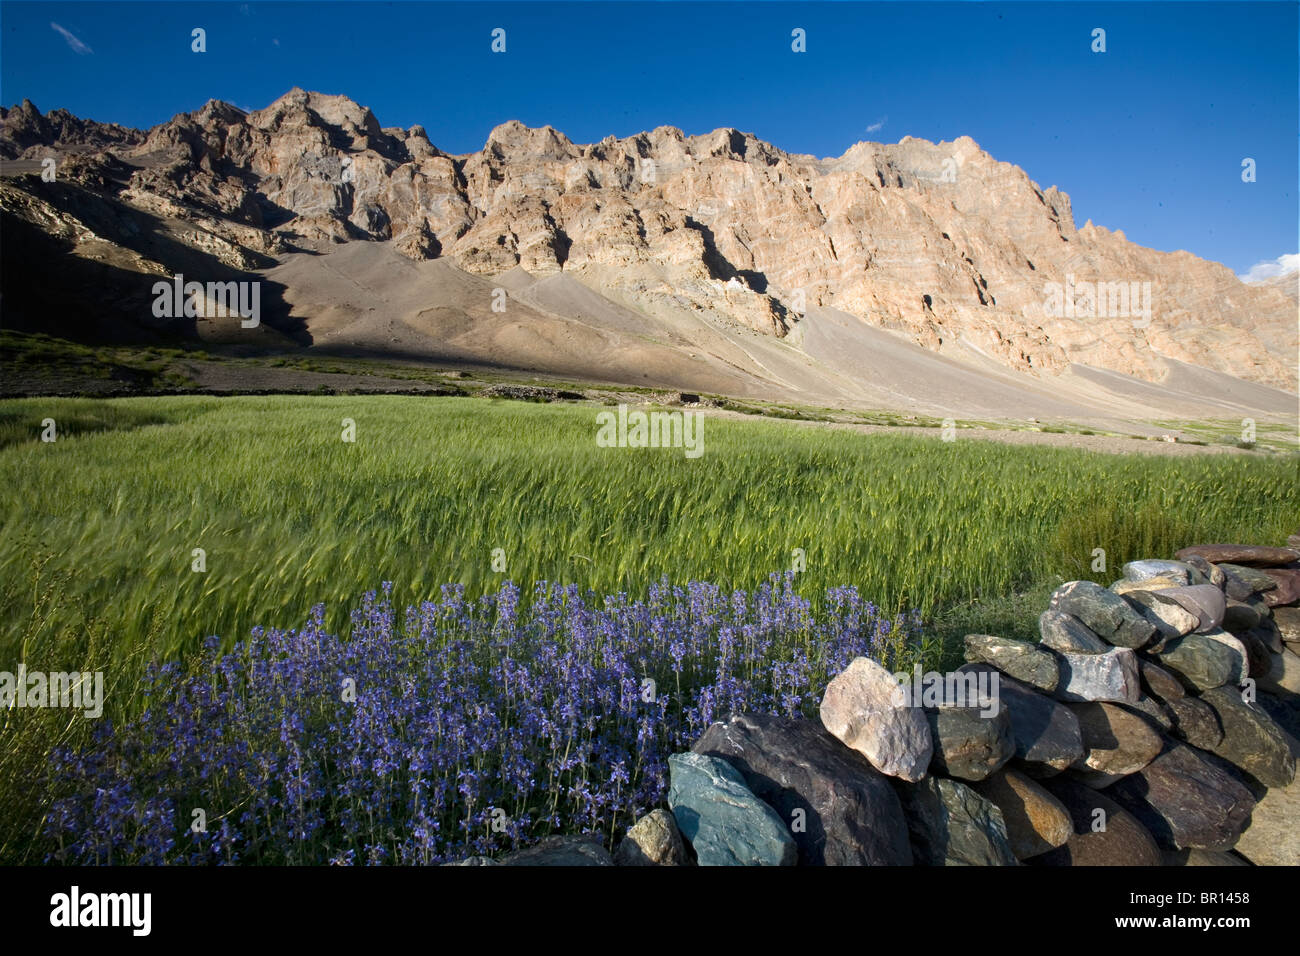 Barley field and purple wildflowers lie in stark contrast to desert mountains in background, Ladakh, northern India. - Stock Image